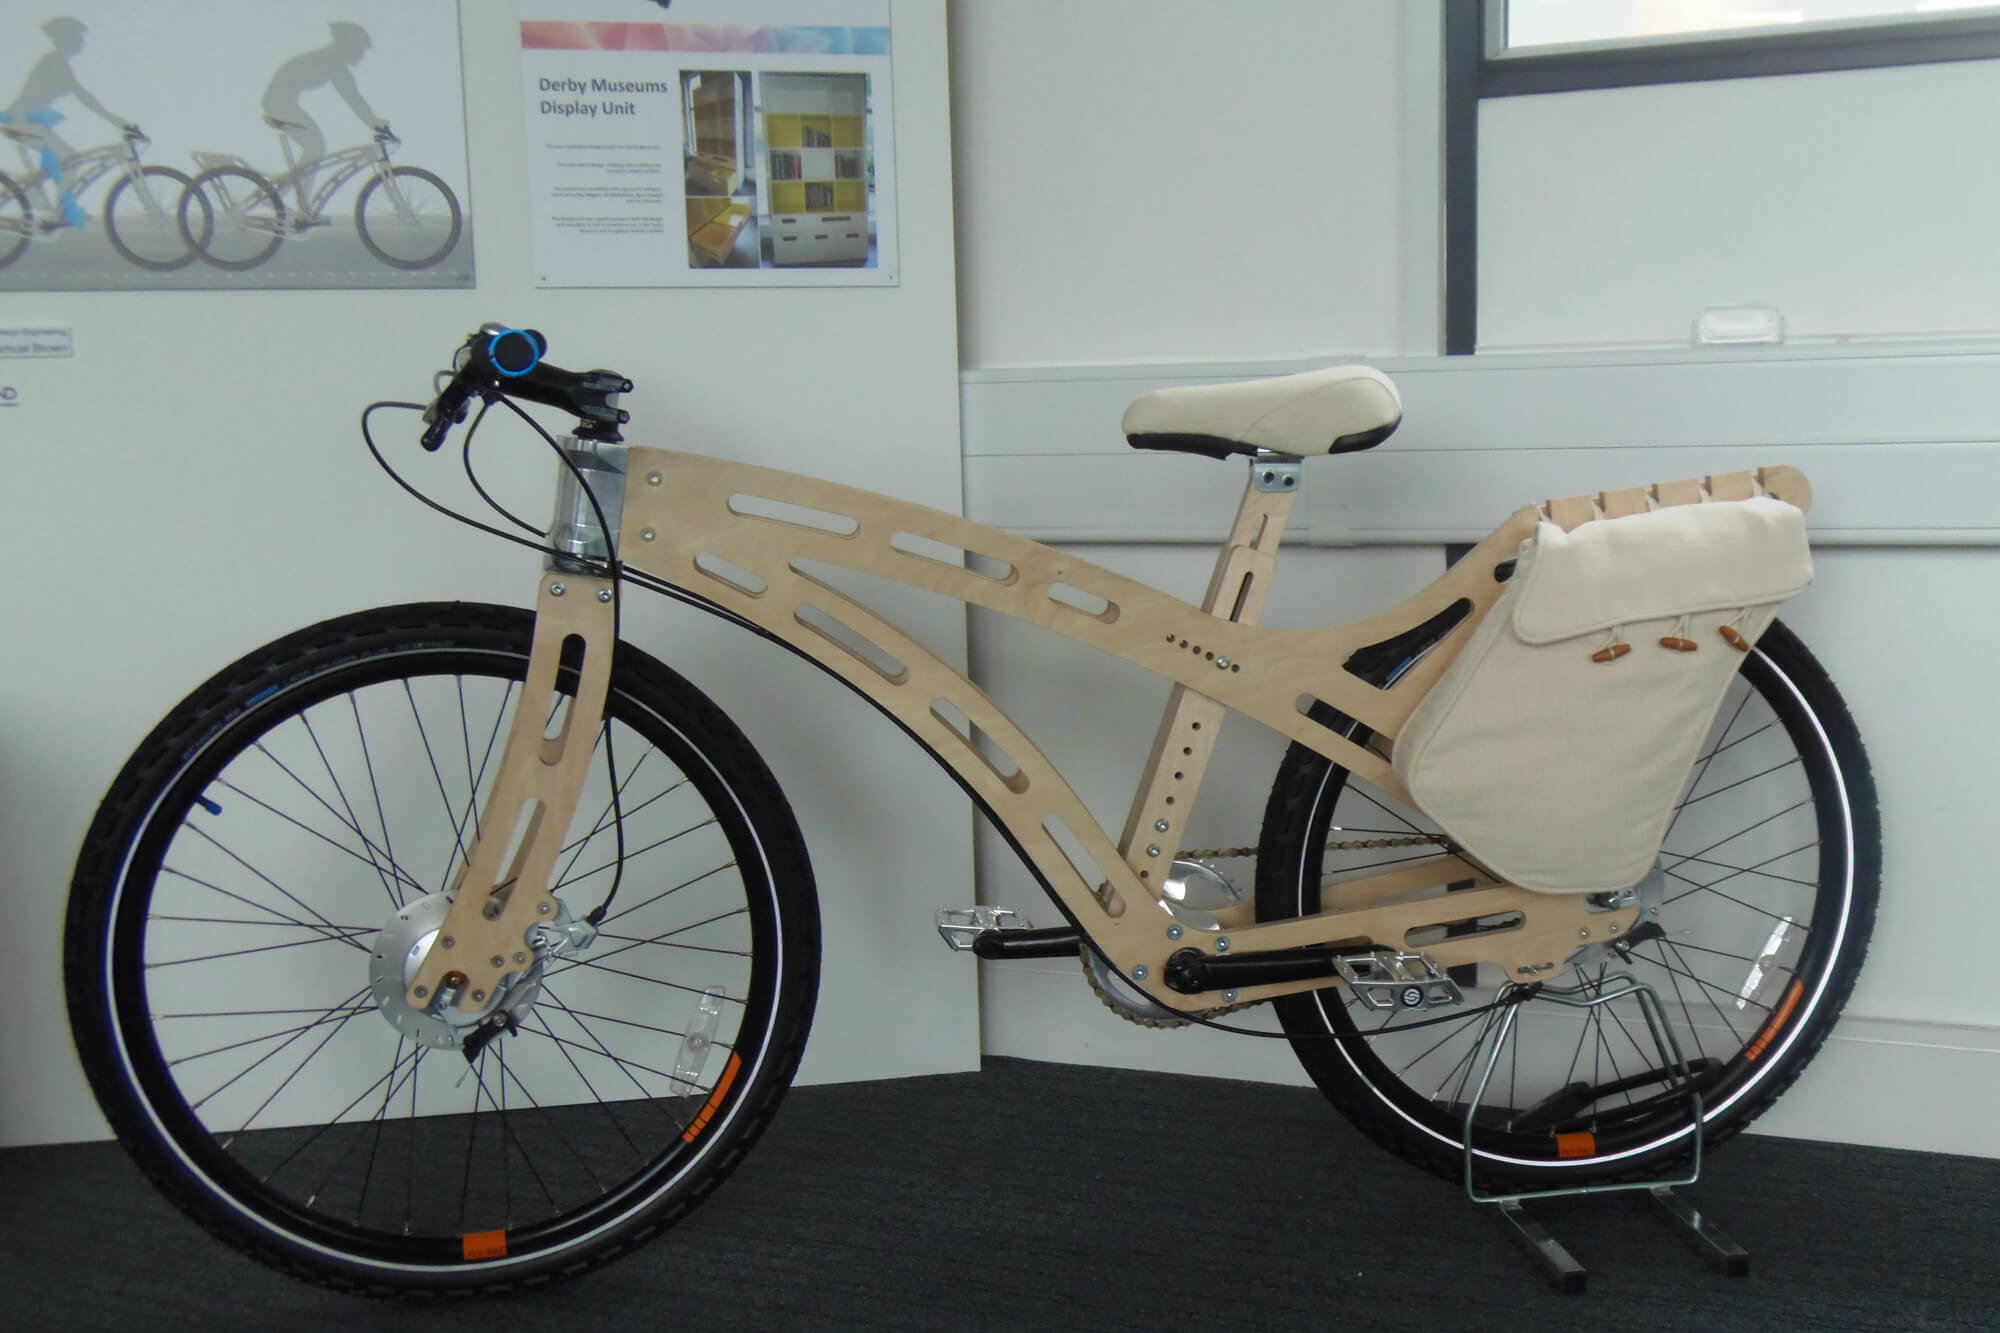 A wooden bike on display